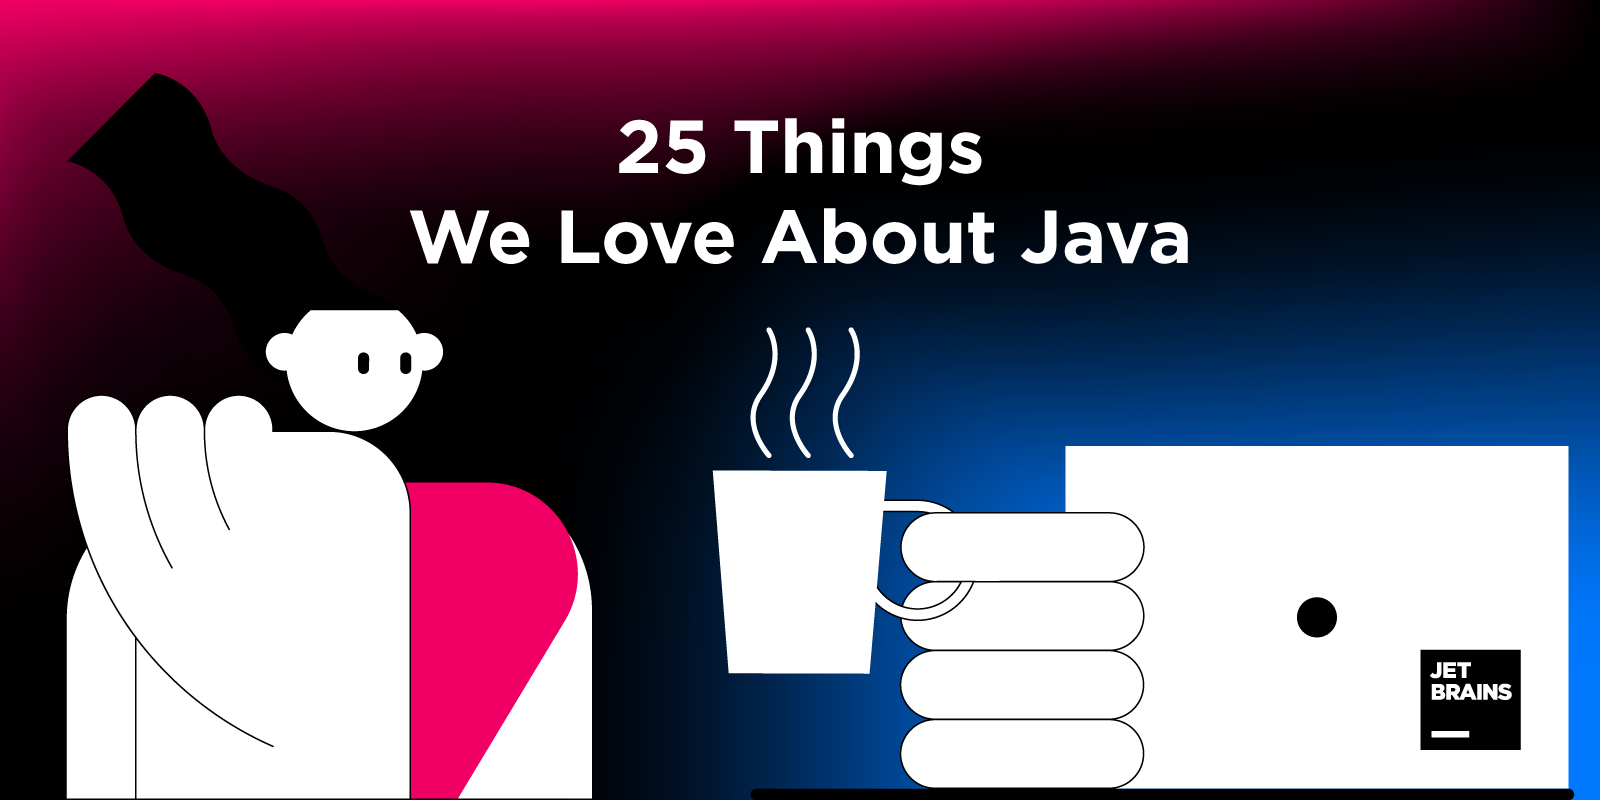 25-Things-We-Love-About-Java